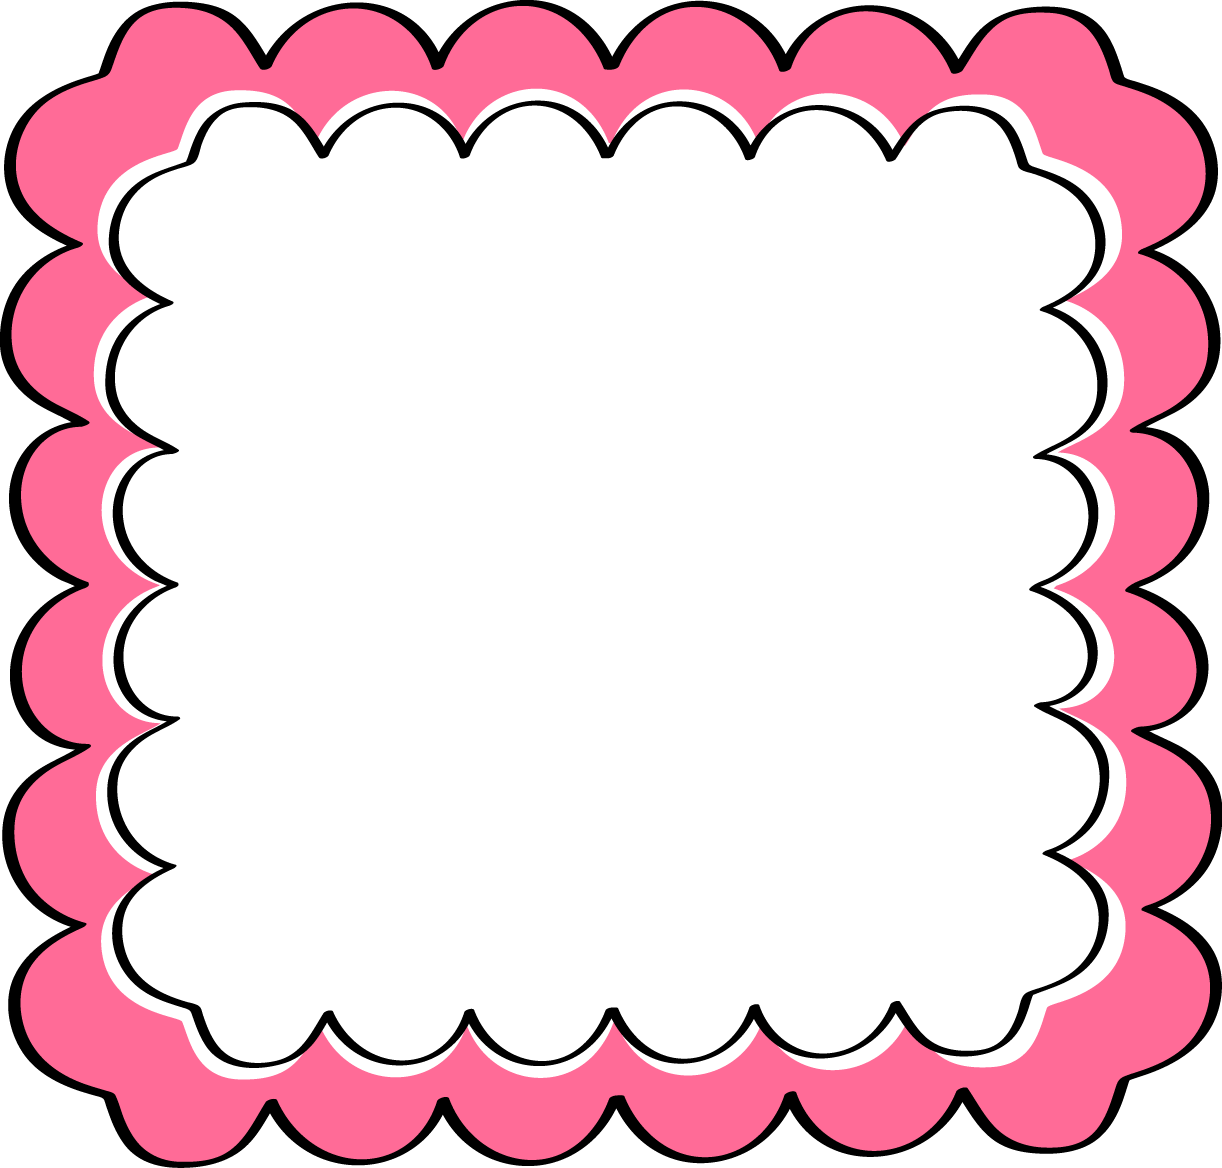 Frames Free Clipart   Free download best Frames Free Clipart on ...